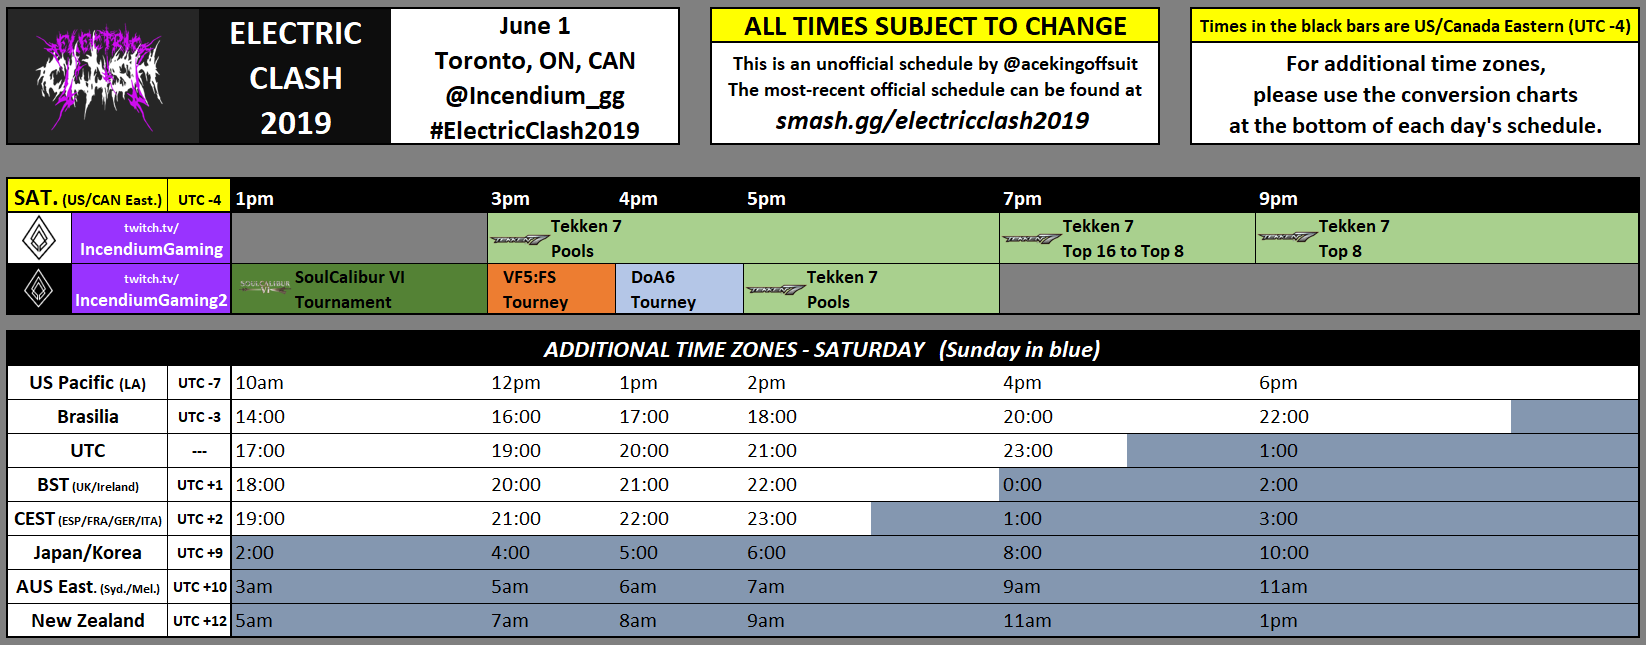 Electric Clash Event Schedule 1 out of 1 image gallery